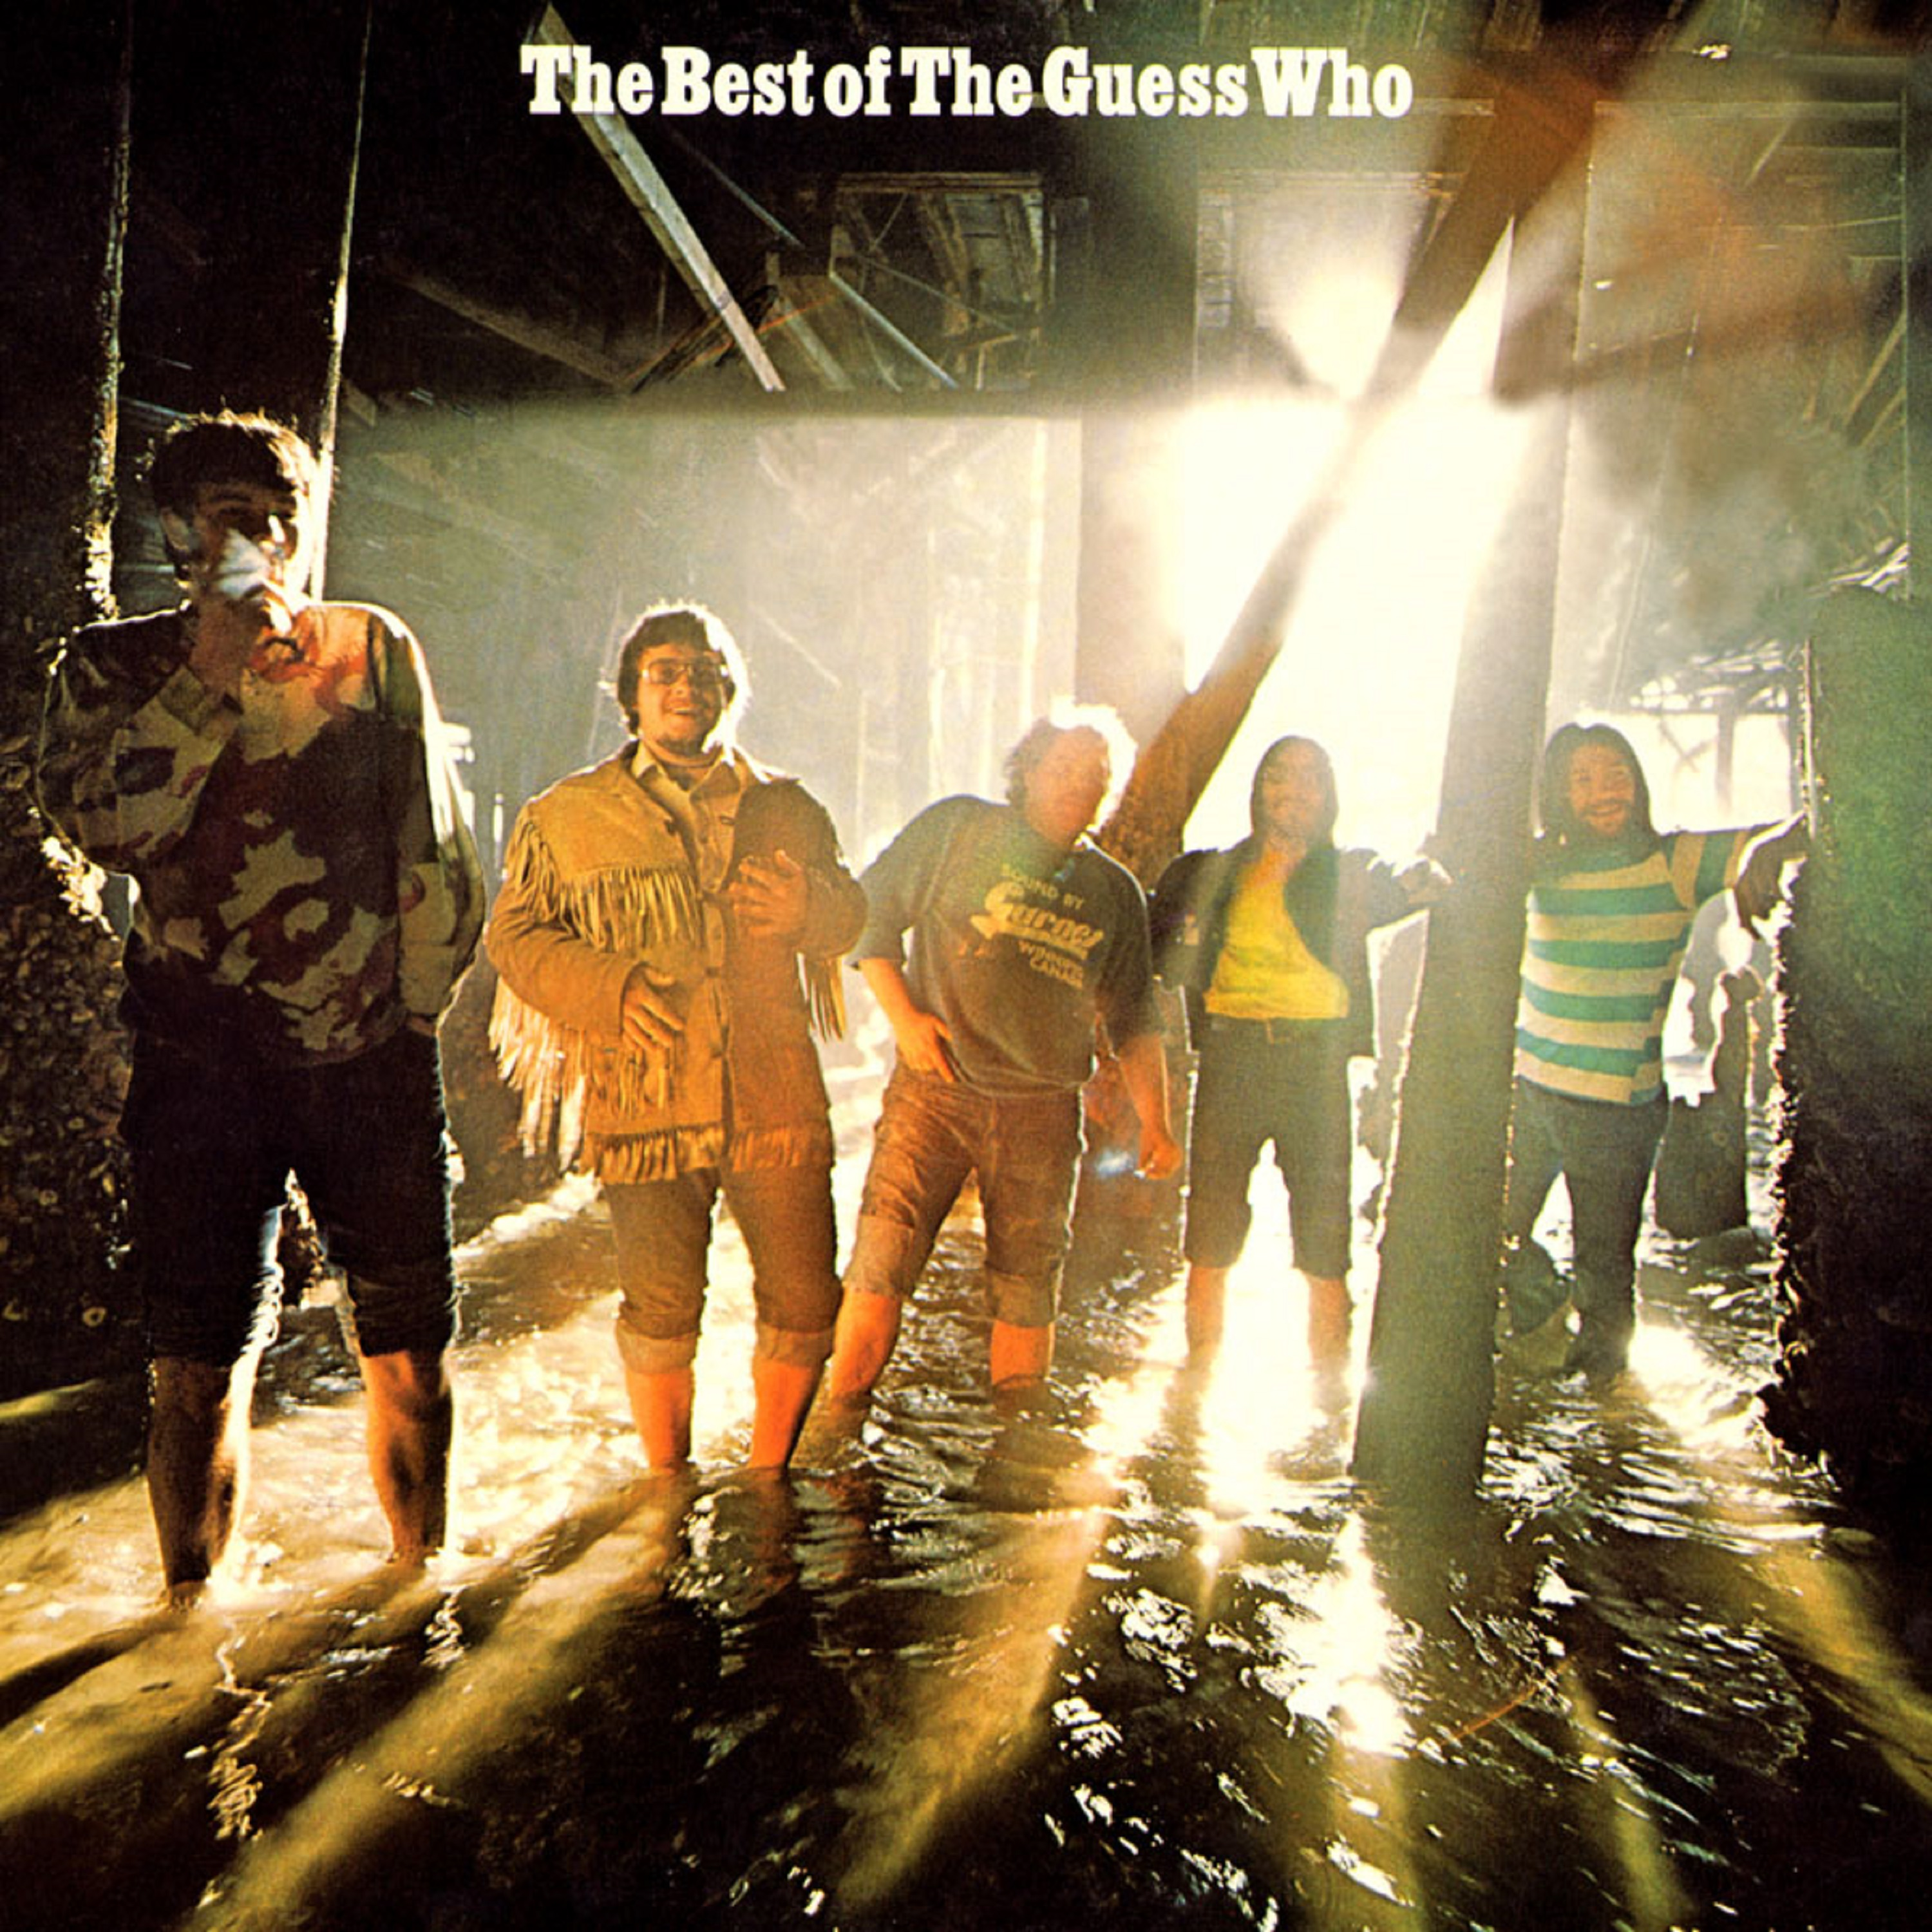 The Guess Who - The Best of The Guess Who (180 Gram Gold Vinyl / Limited Edition / Gatefold Cover)